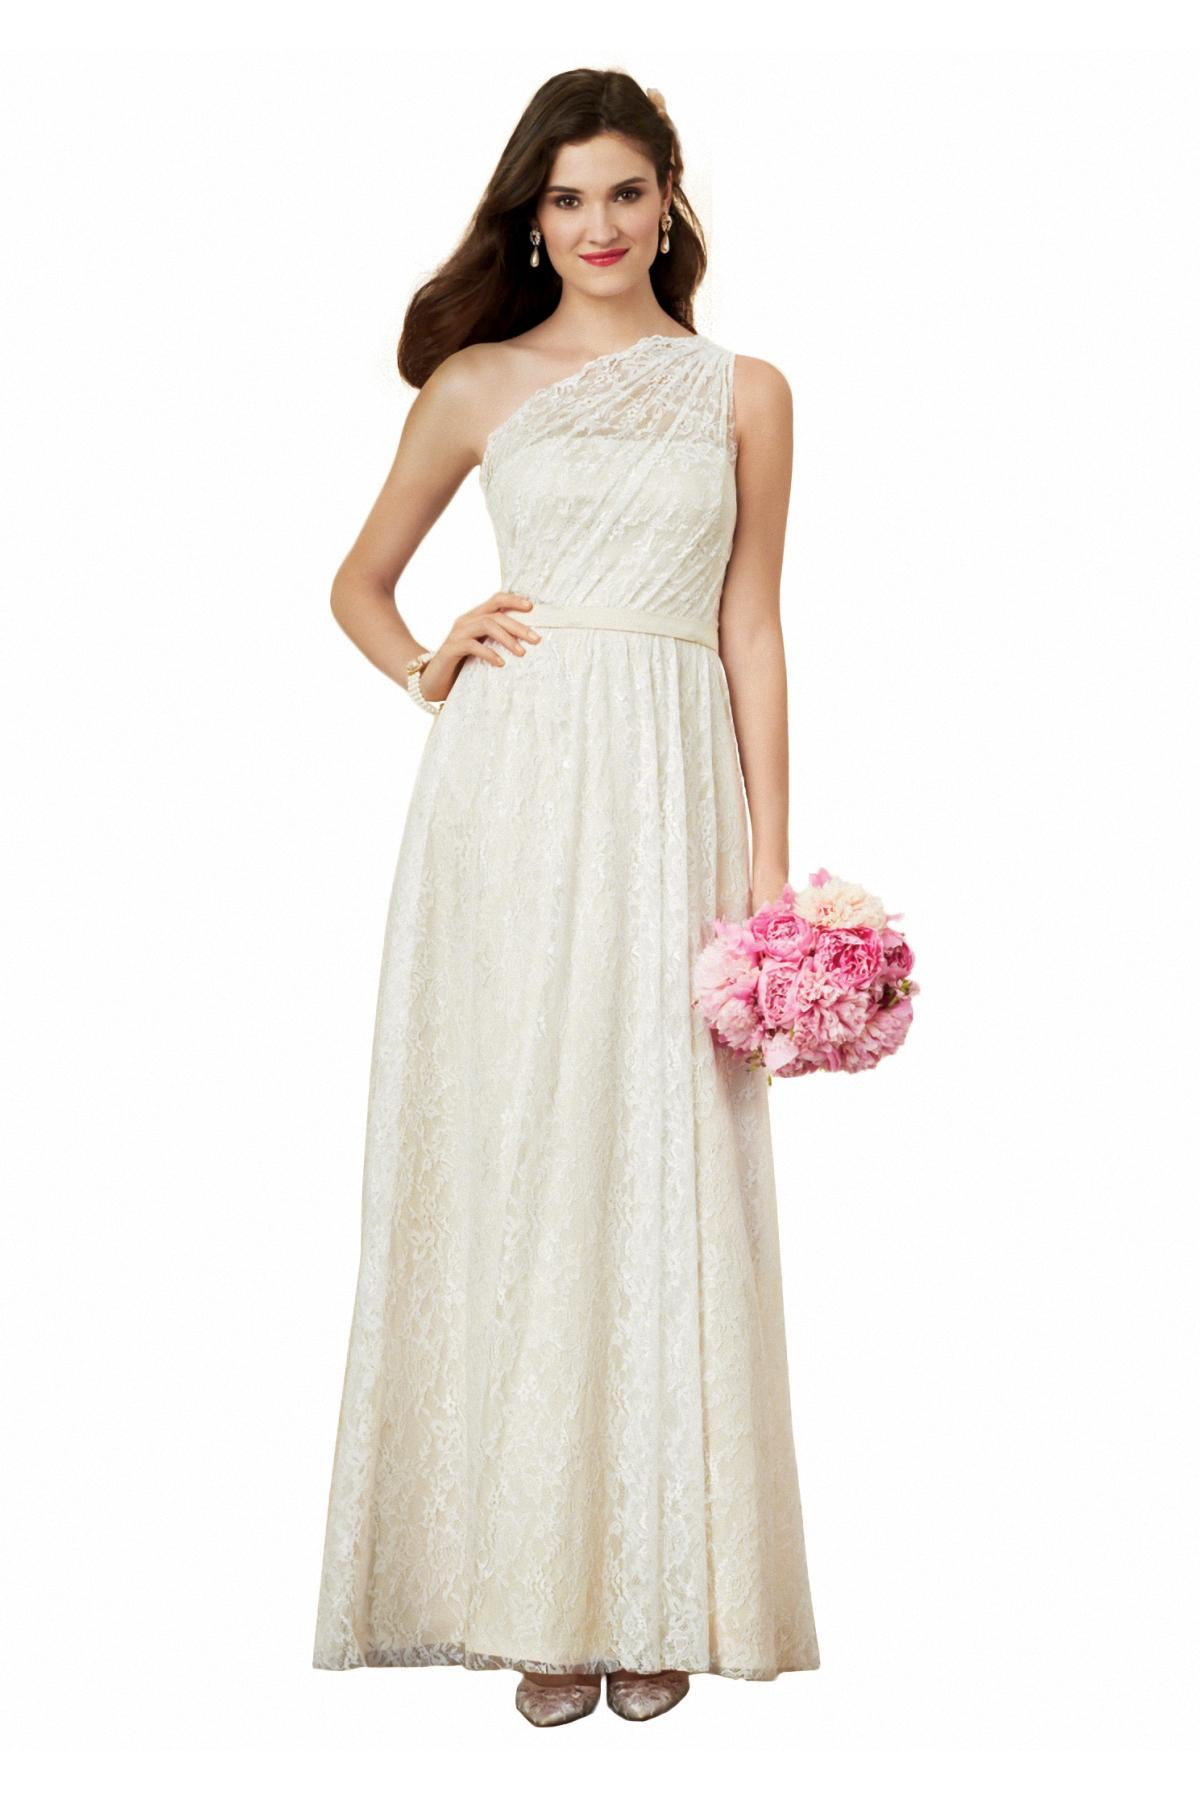 Exelent cheap wedding dresses under 50 dollars ideas for Cheap wedding dresses under 50 dollars